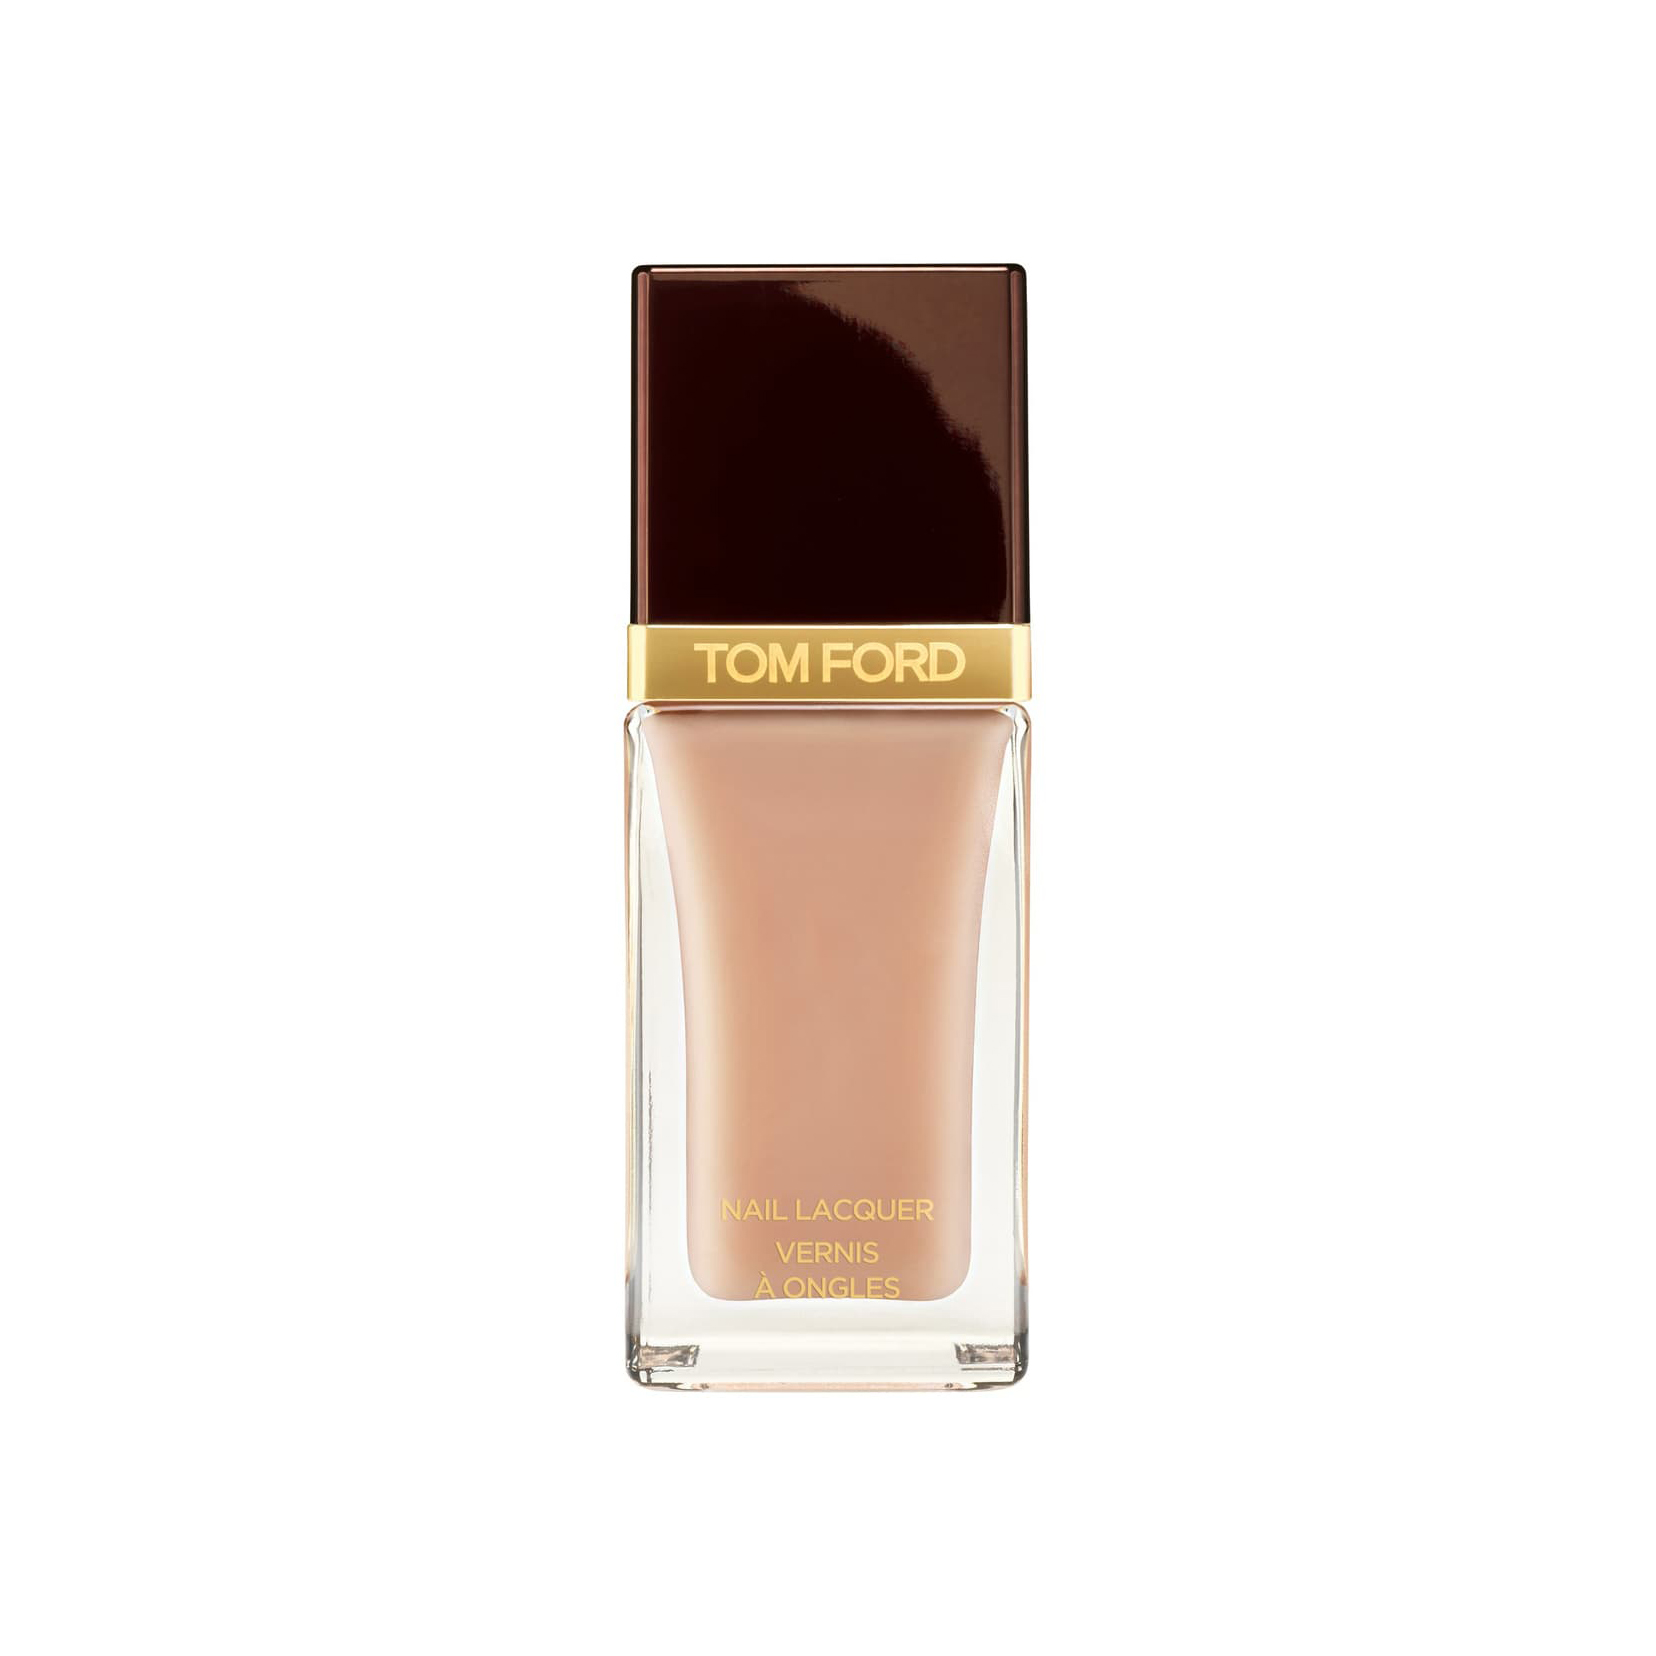 Tom Ford Nail Lacquer in Toasted Sugar